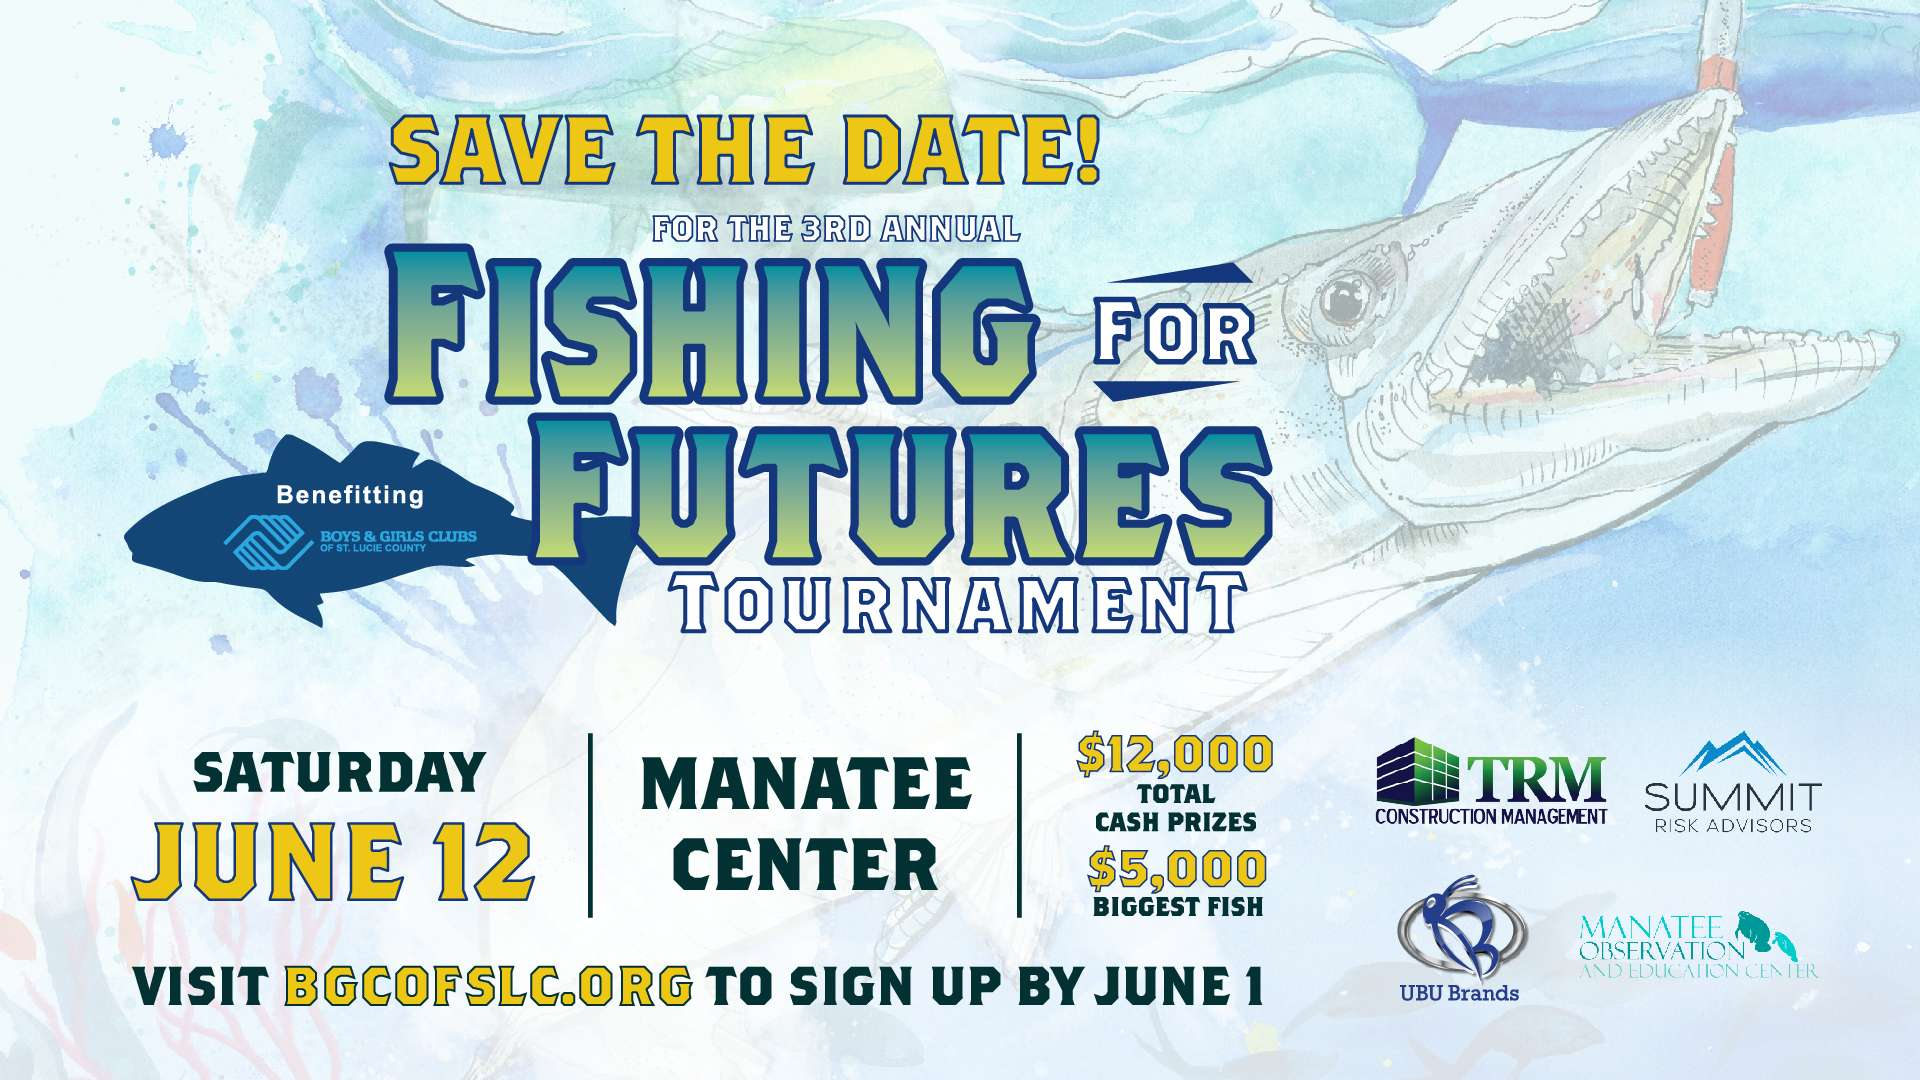 Help Fish For A Better Future, An Invite From TRM